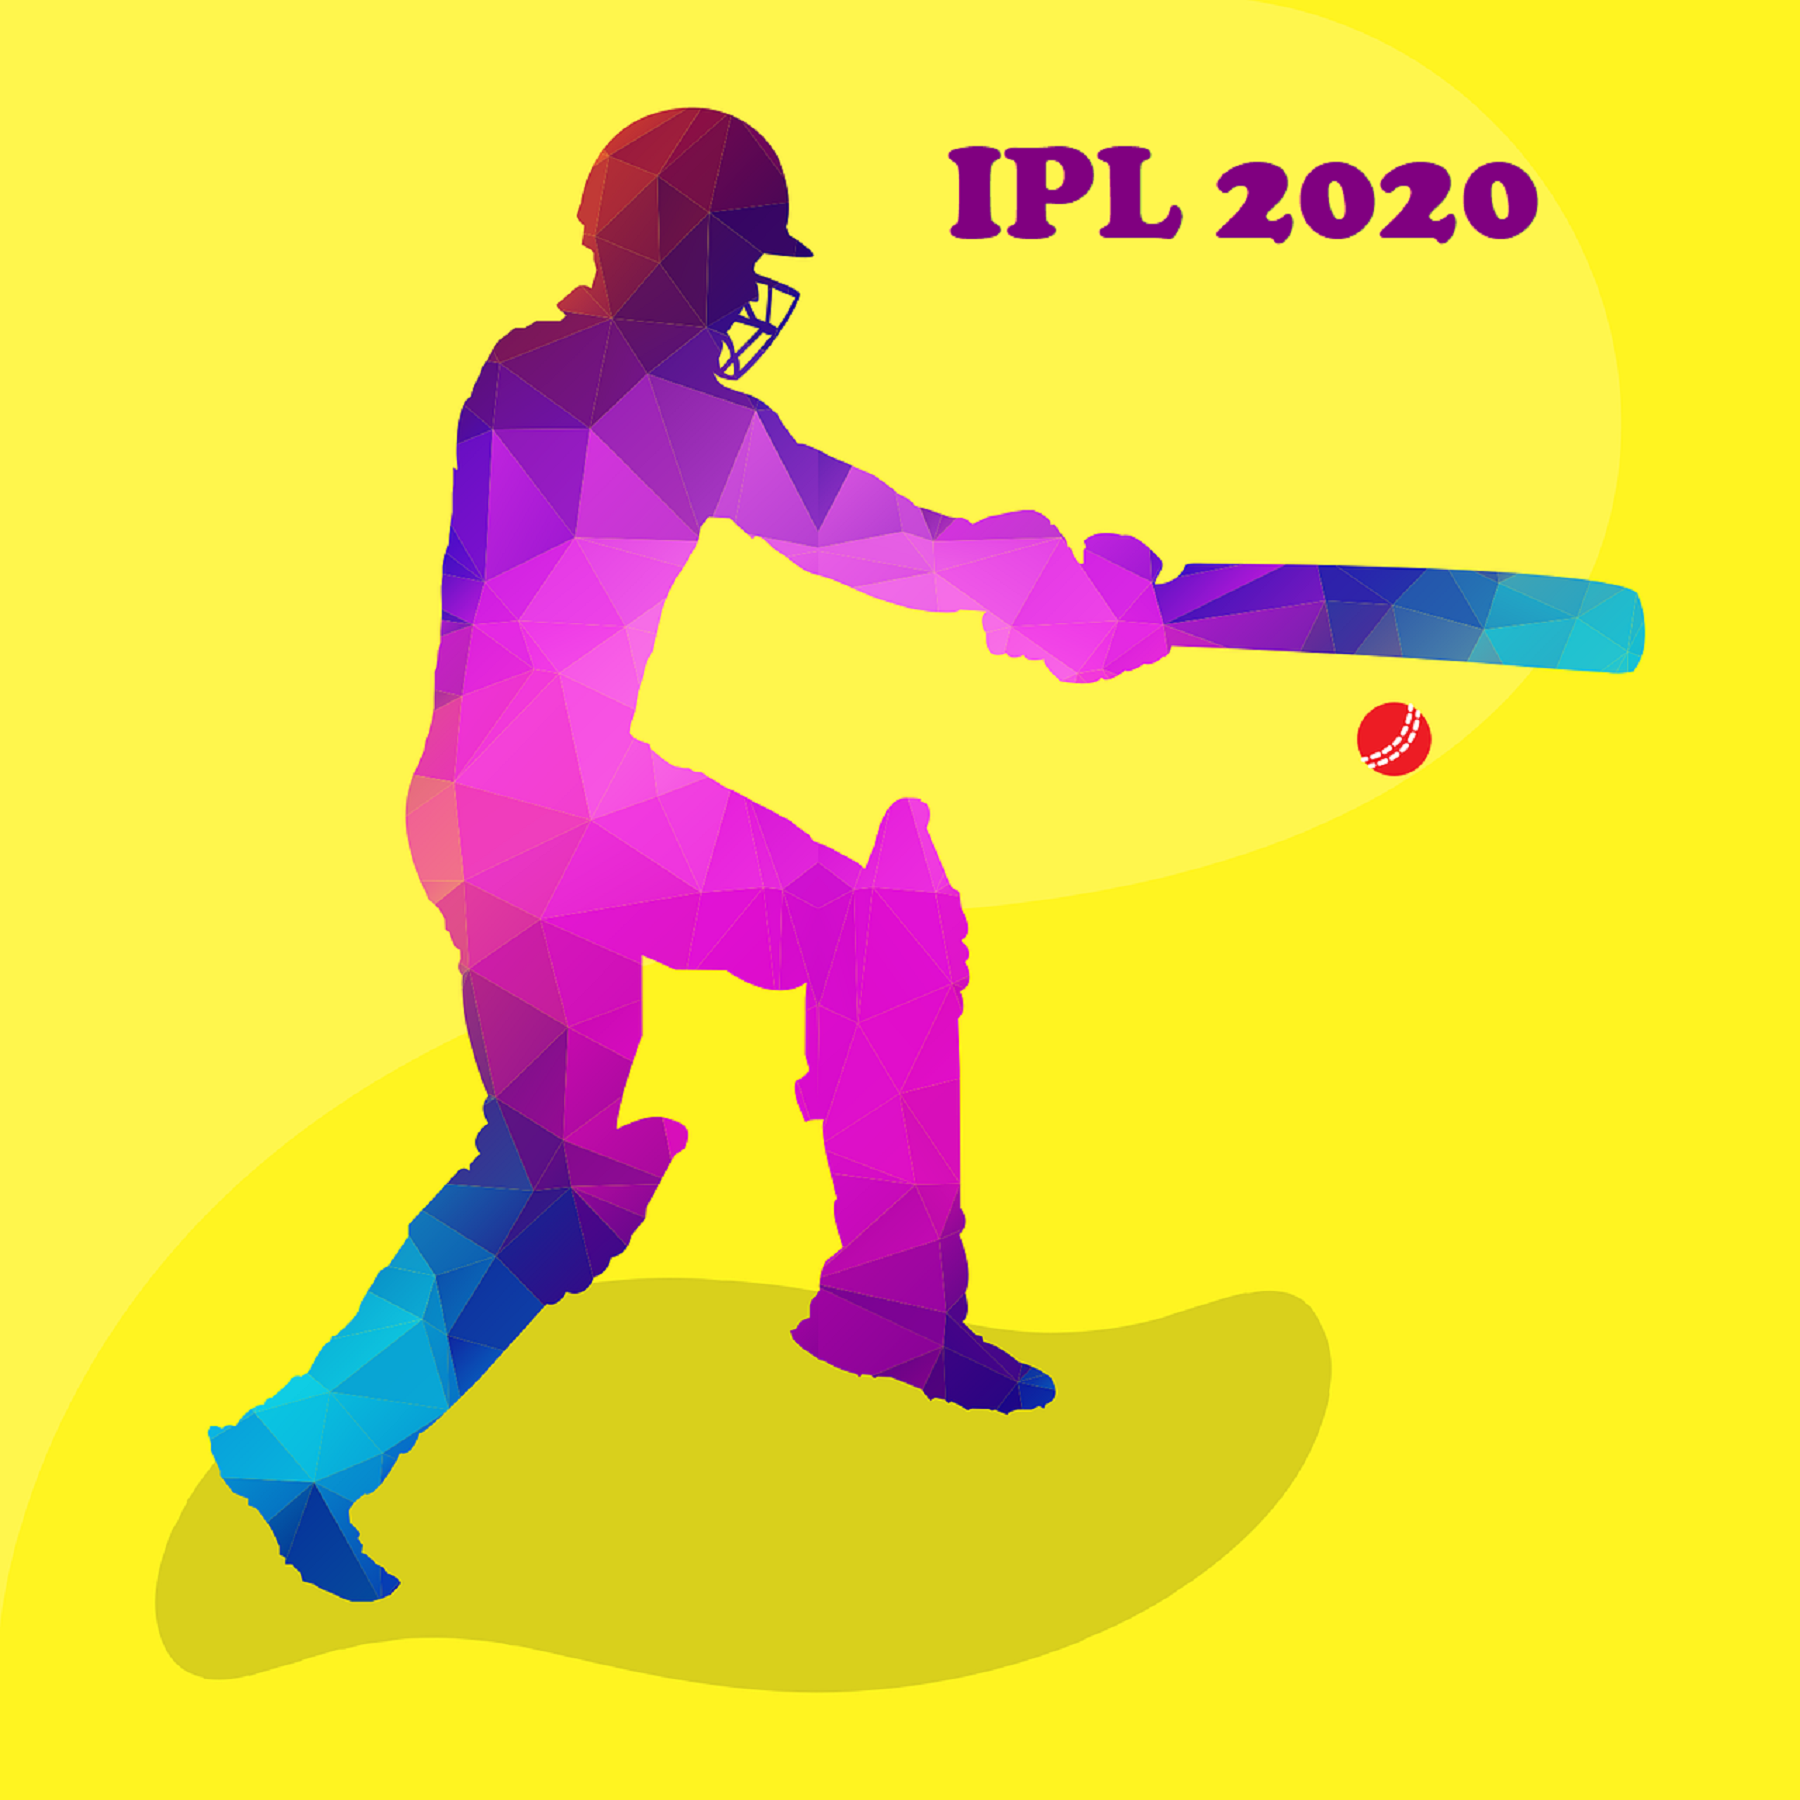 IPL 2020 For Kids